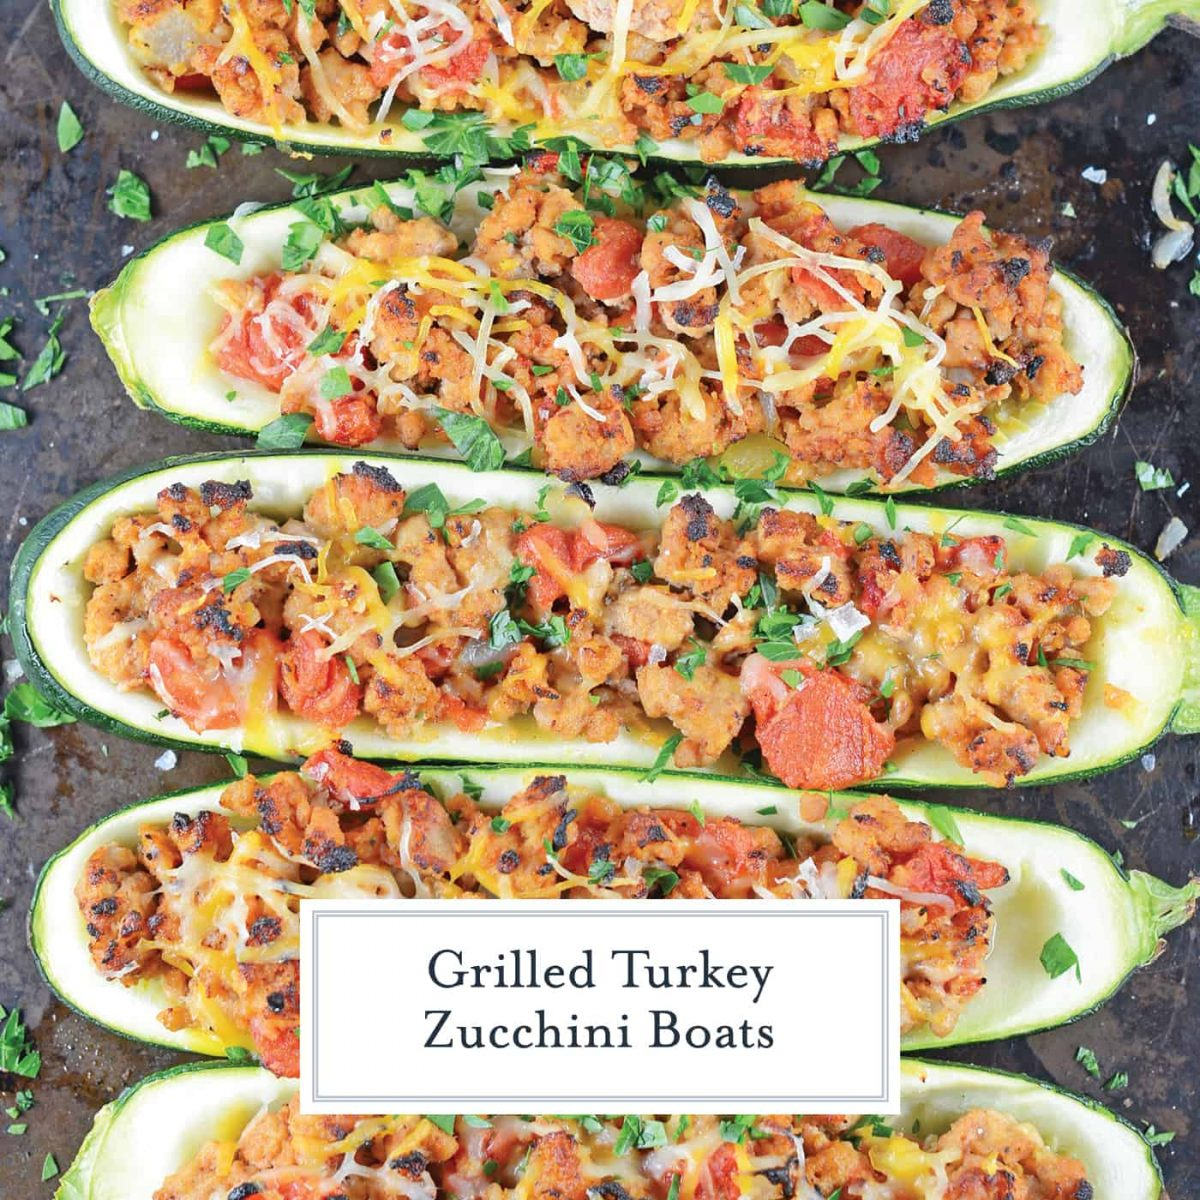 Turkey stuffed zucchini makes the perfect healthy dinner! One of the best zucchini recipes I've ever made. #groundturkeyrecipes #grilledzuchhini www.savoryexperiments.com